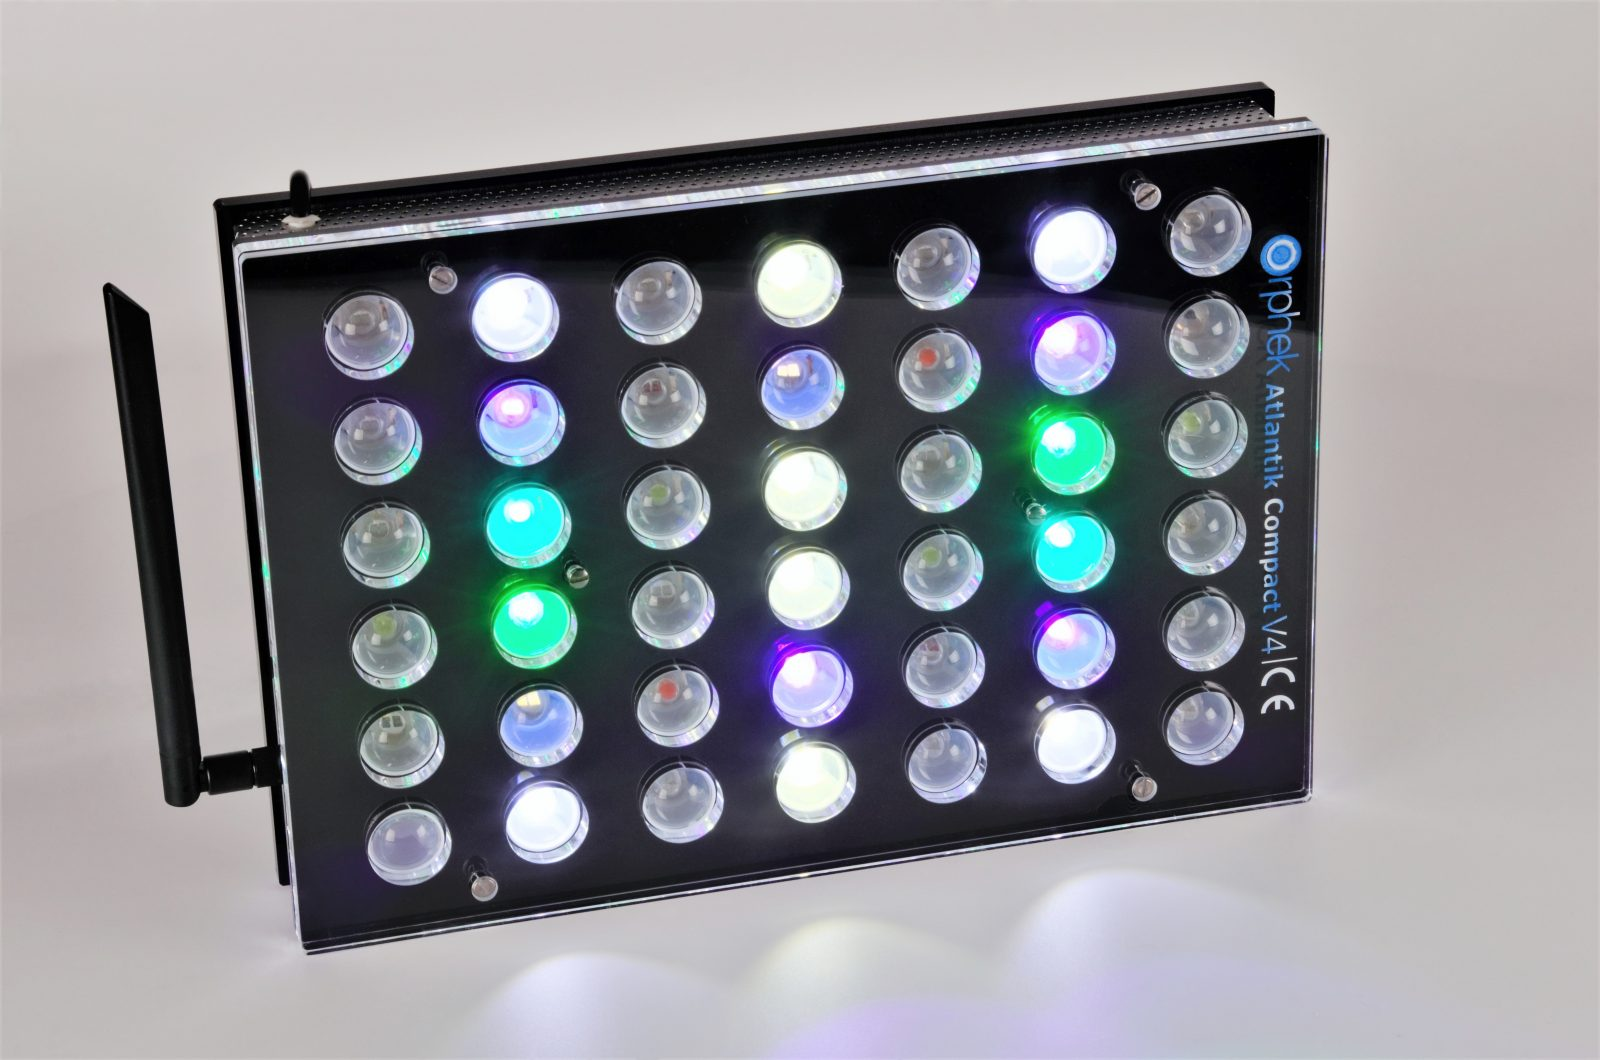 Orphek-Aquarium-Iluminación-LED-Atlantik -Compact-V4-light-on-channel 1 + 3